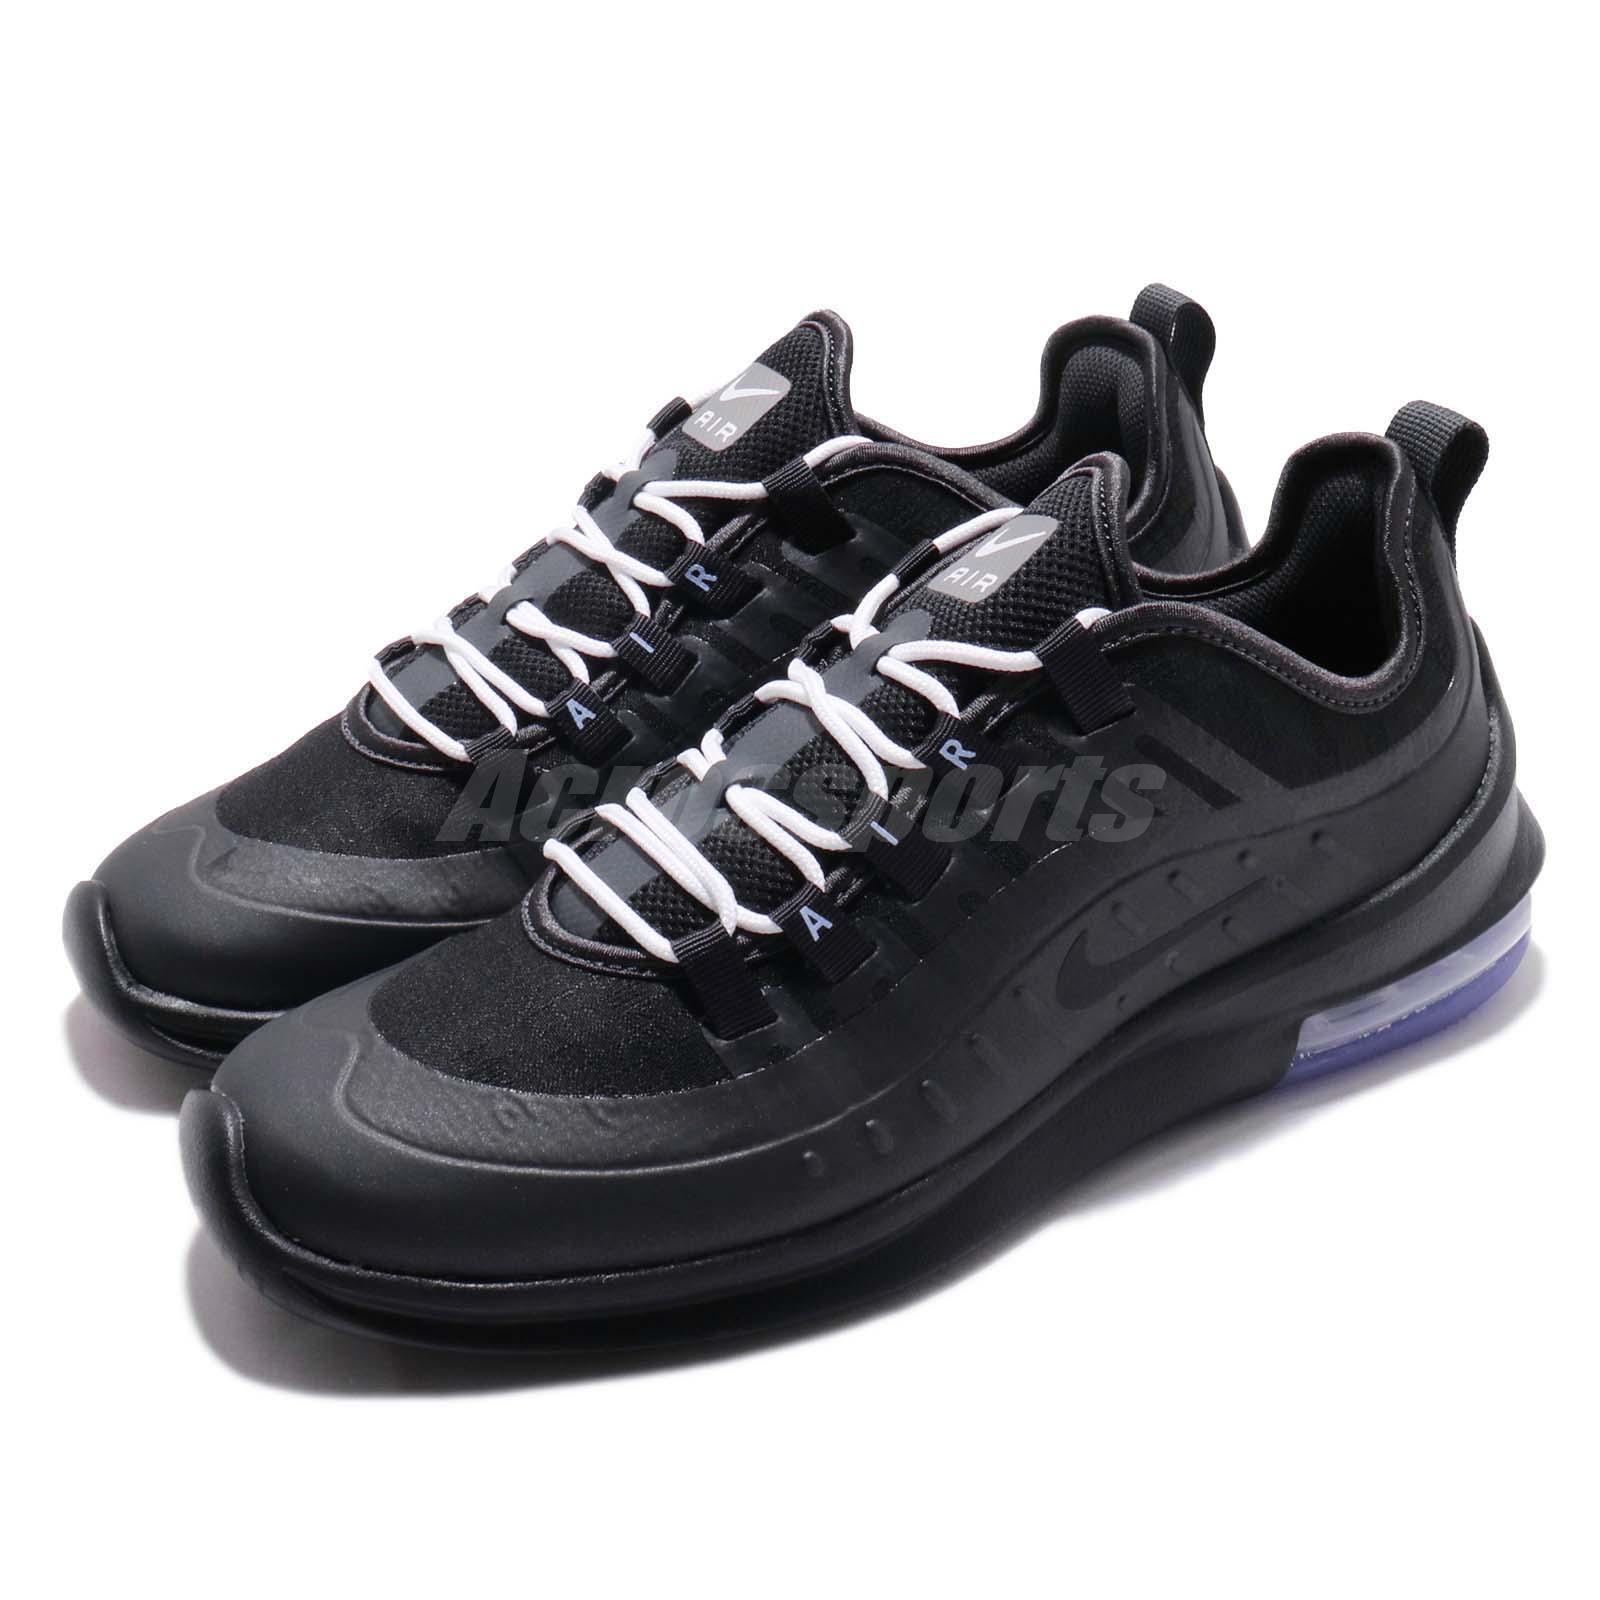 uk availability d1c68 2a057 ... where can i buy nike air axis max axis air prem black anthracite  running shoes sneakers